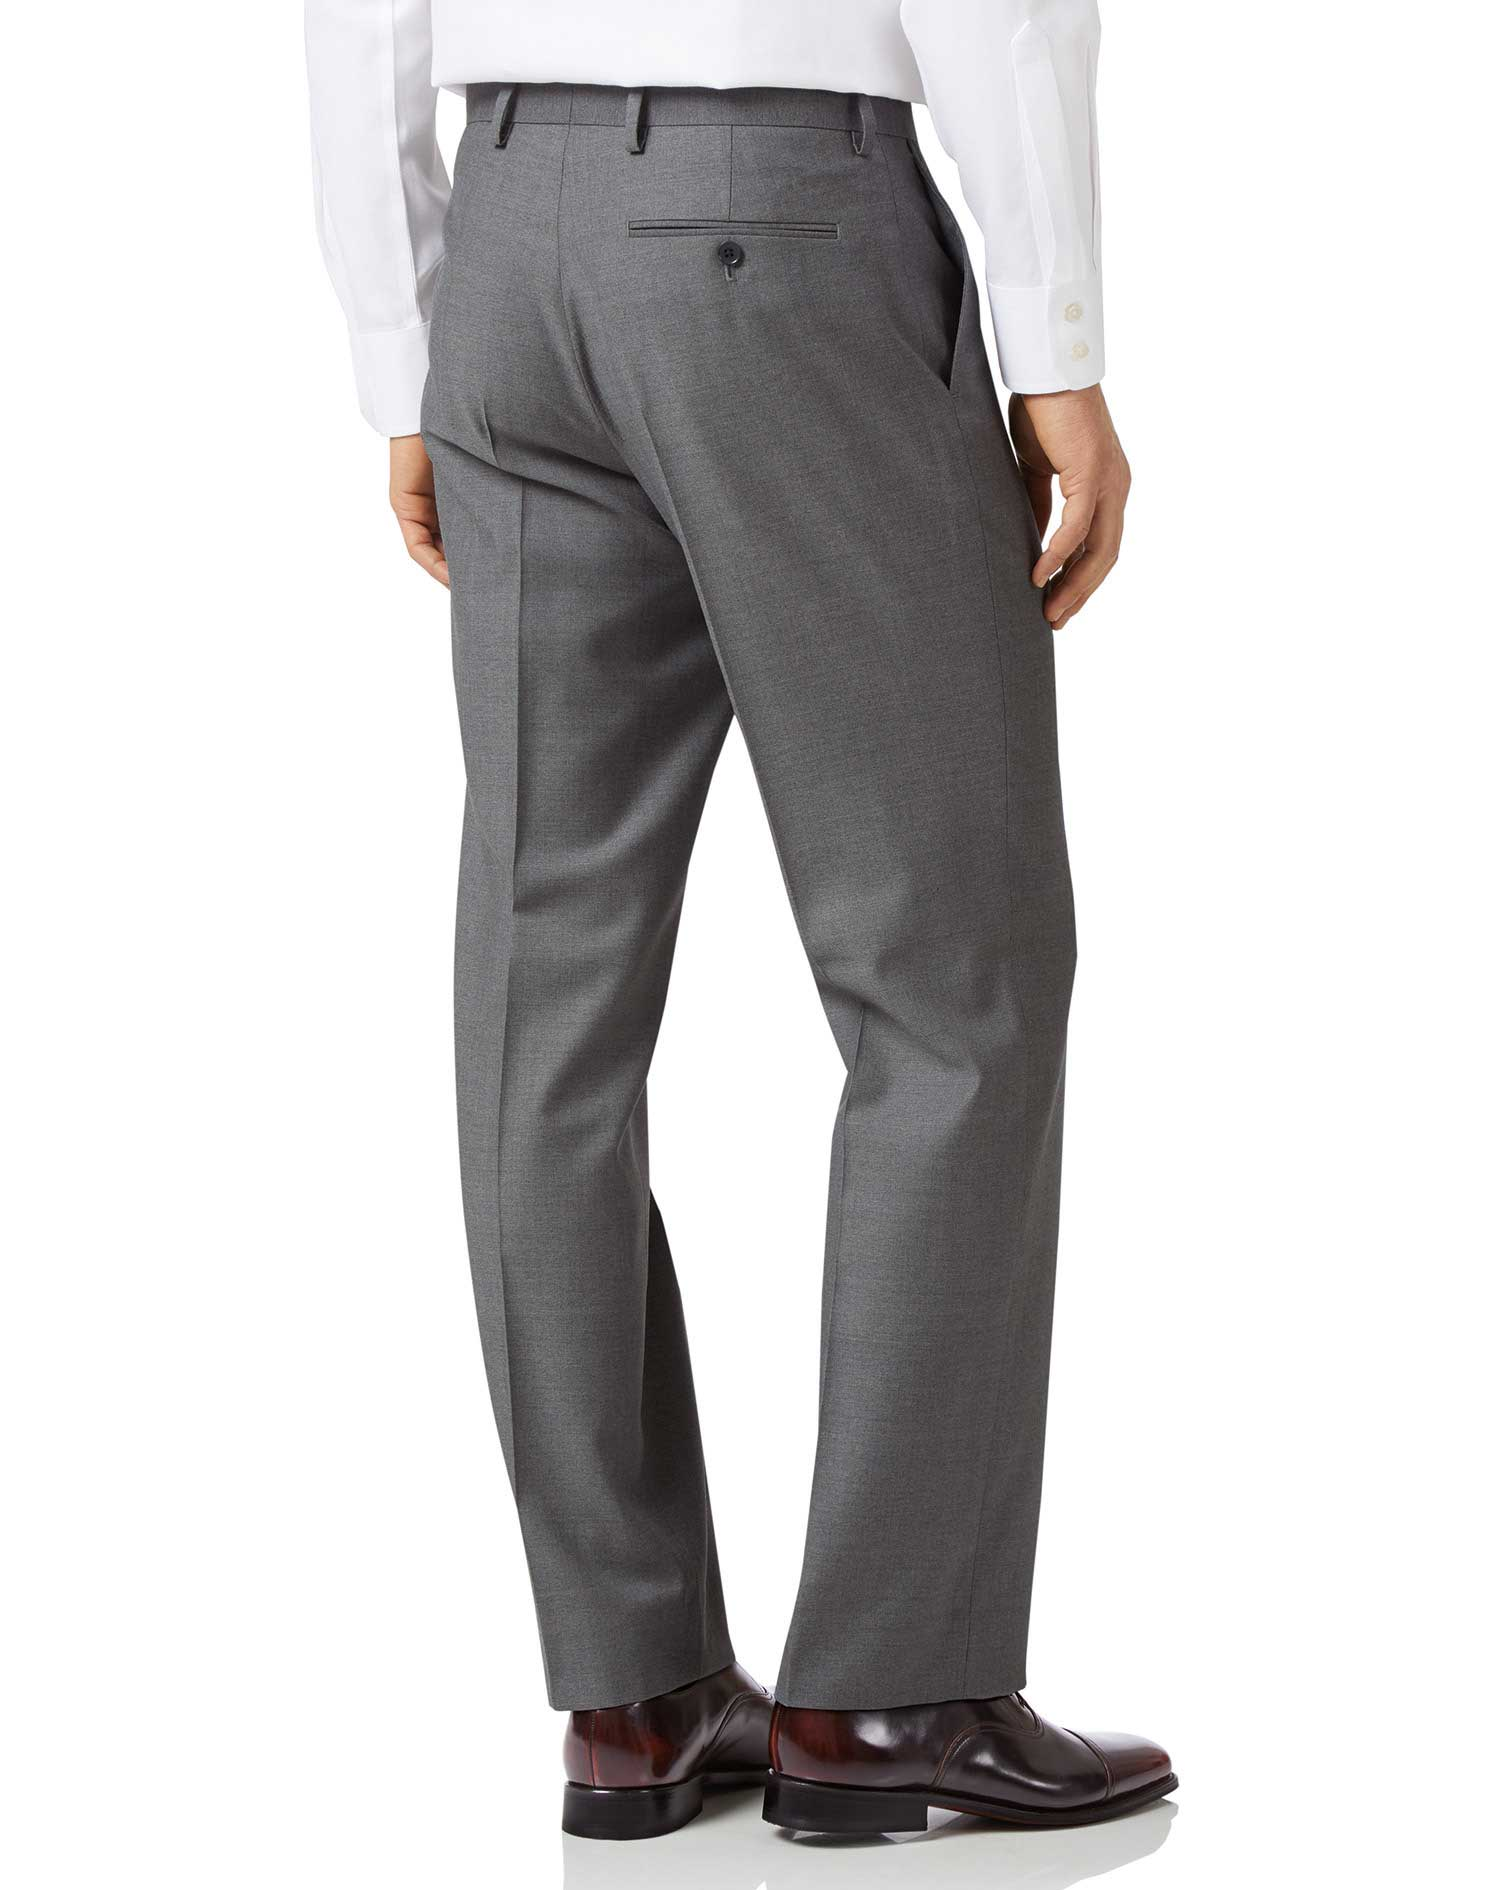 Grey classic fit twill business suit pants